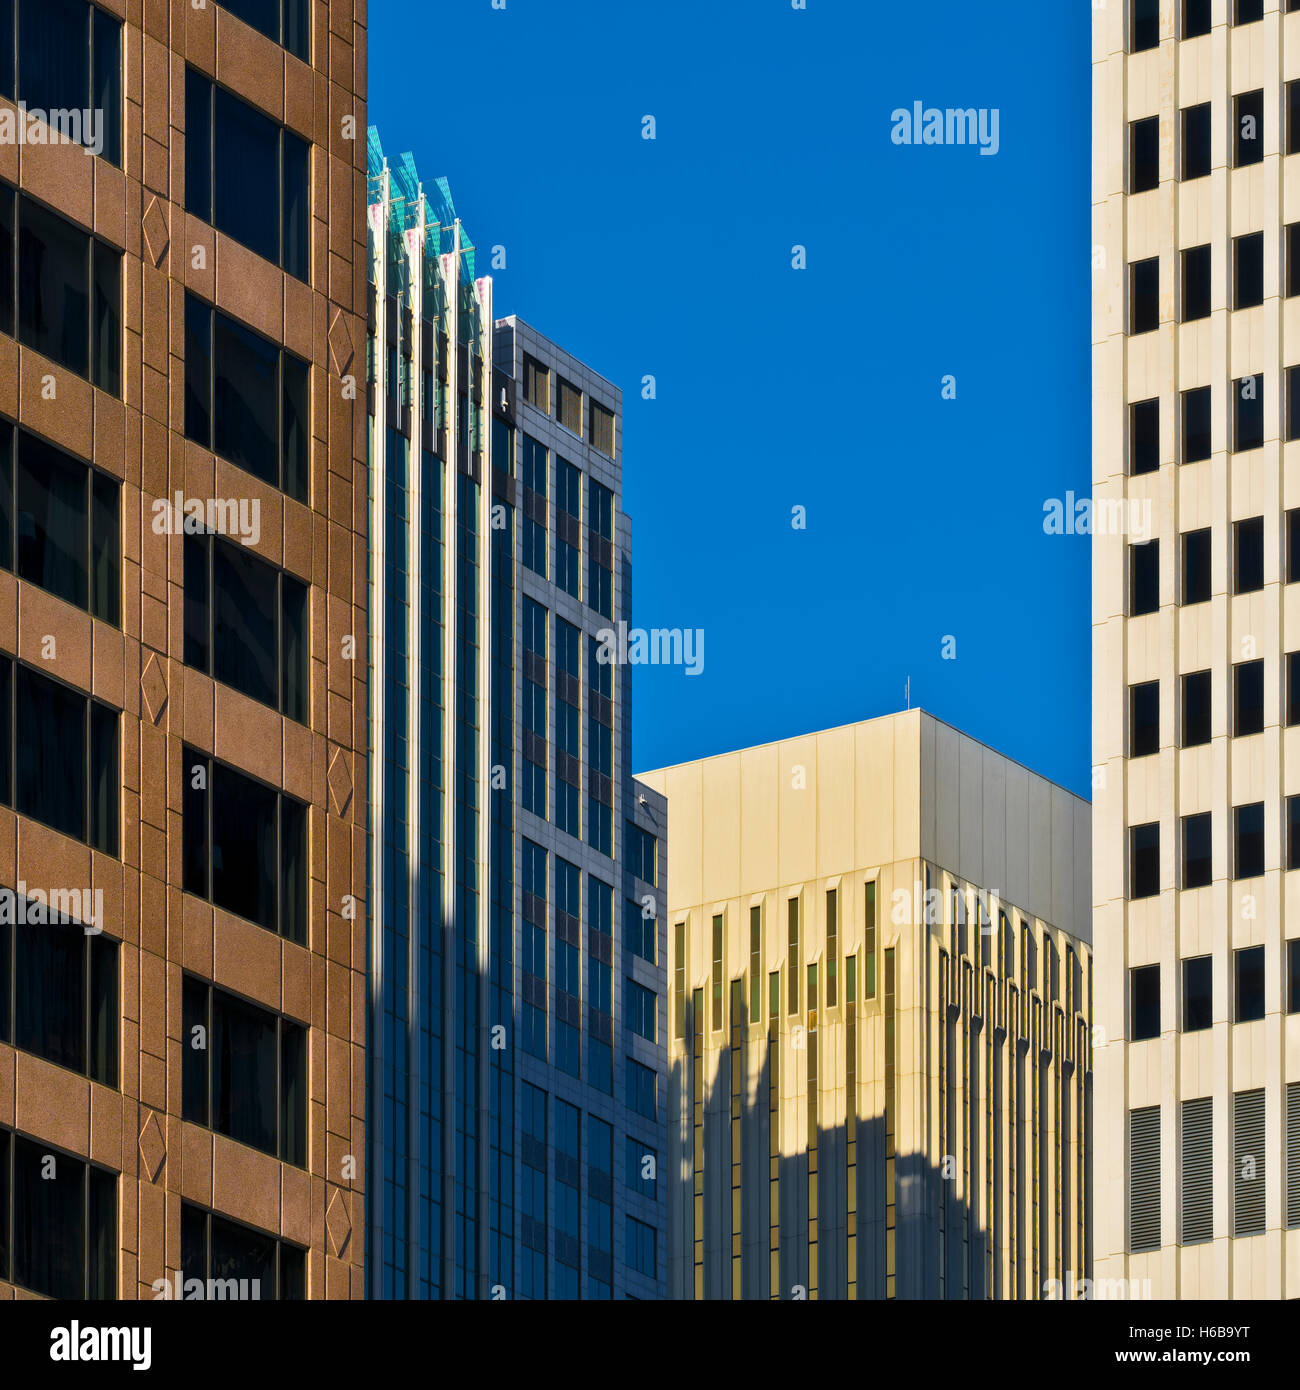 Architecture, Buildings in the City of Charlotte, NC - Stock Image